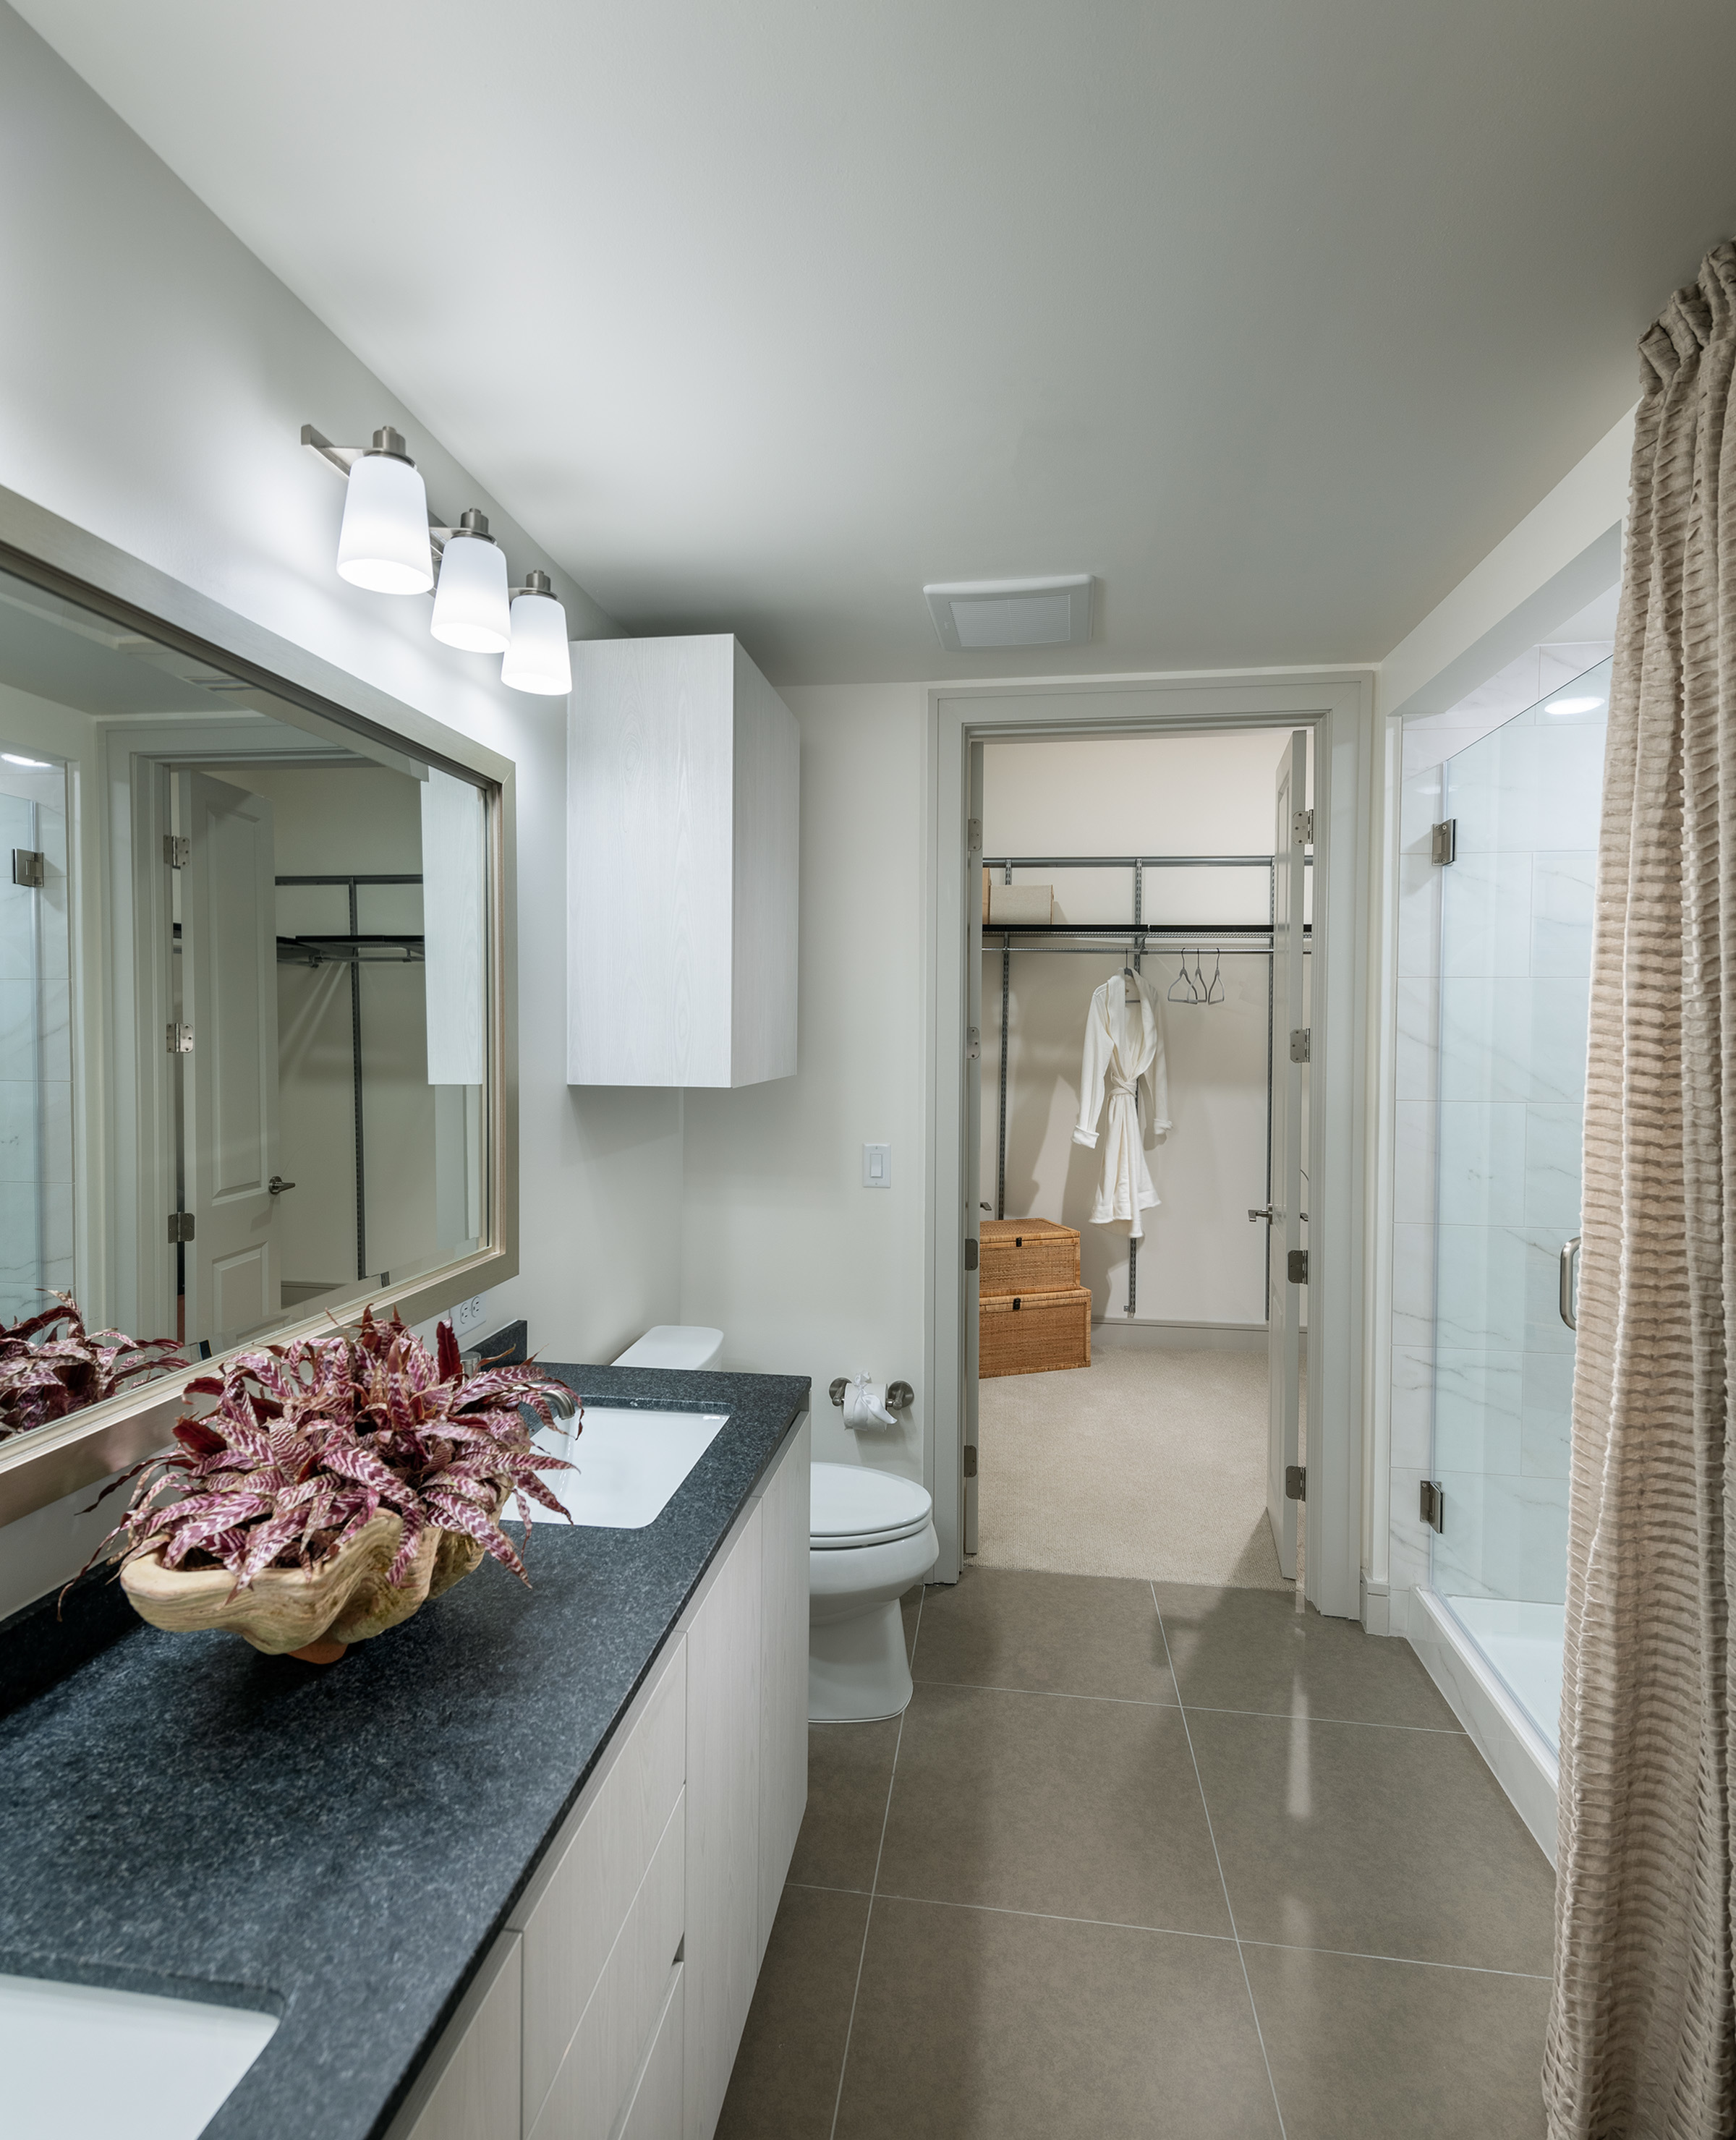 Spa-inspired bathrooms with large soaking tub